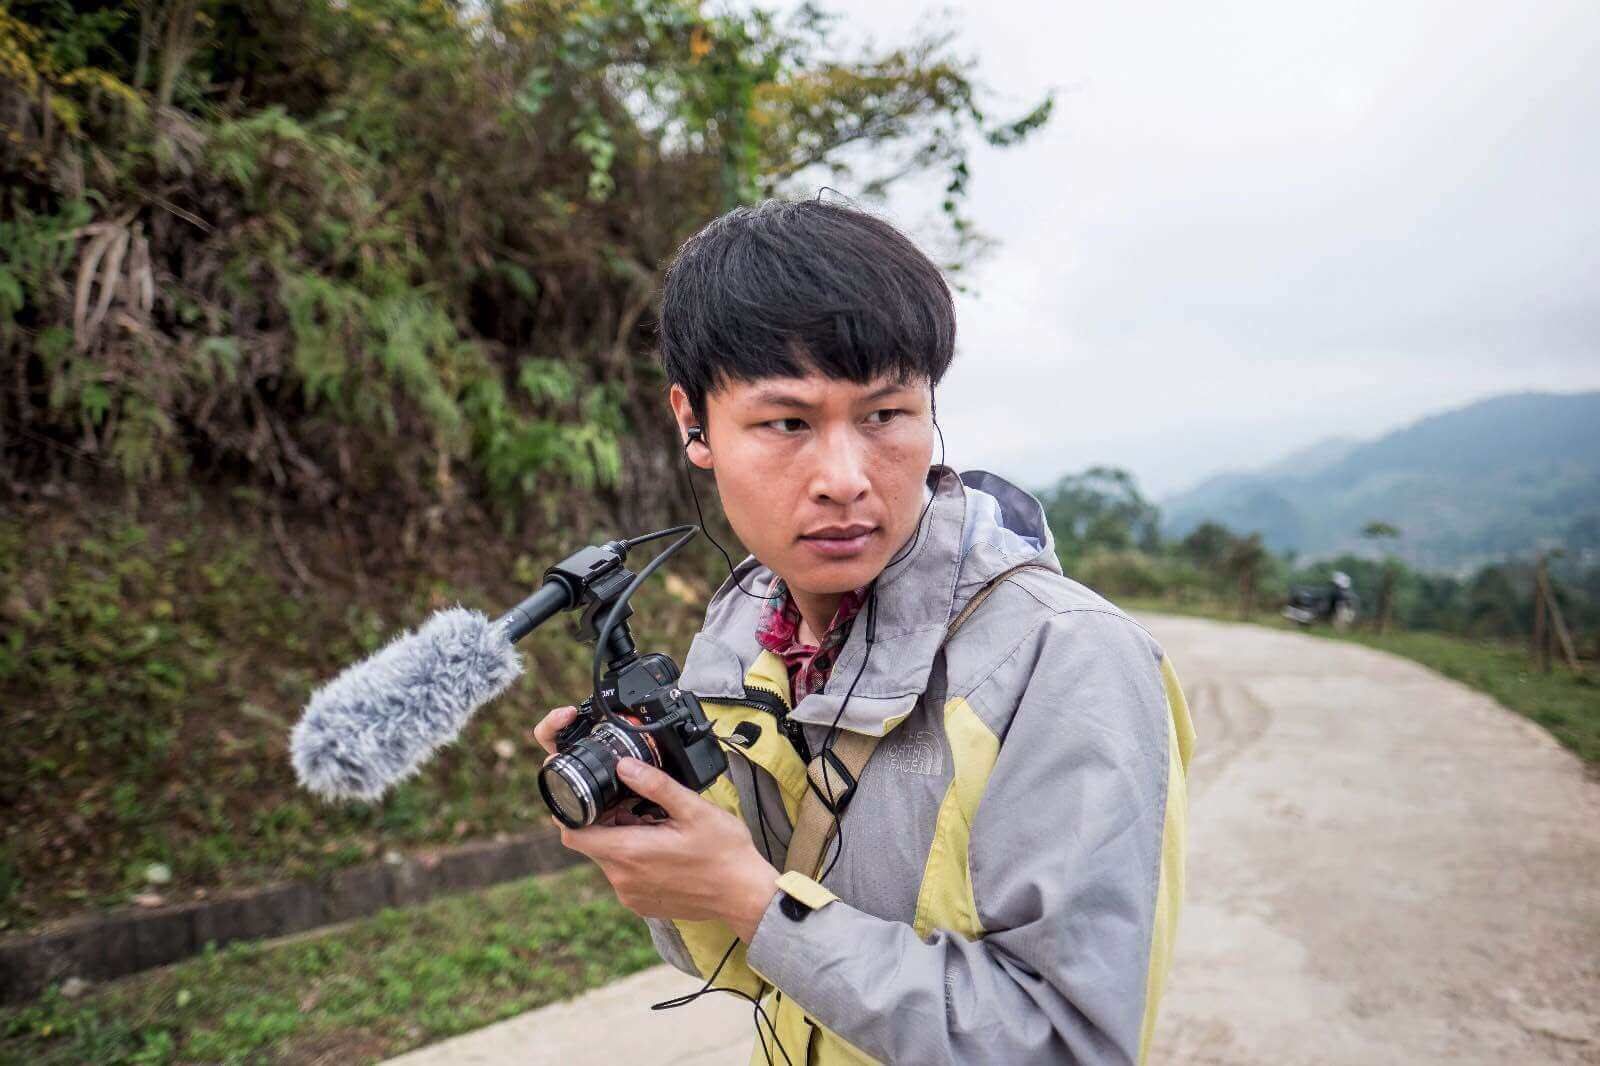 Linh Pham on assignment for The World Bank in Vietnam